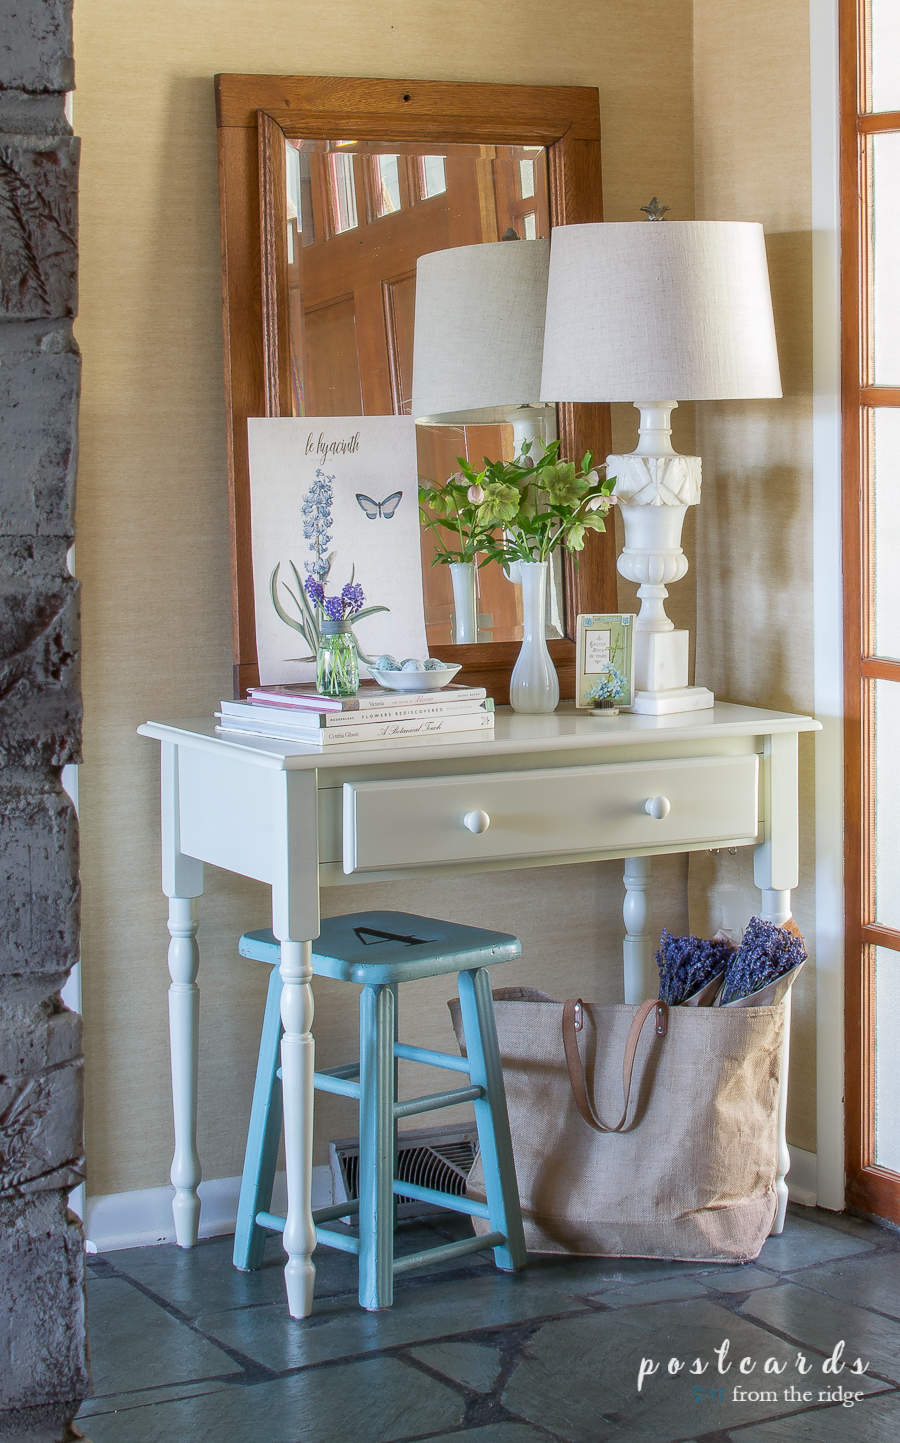 white desk and blue stool in an entry with vintage flagstone floor